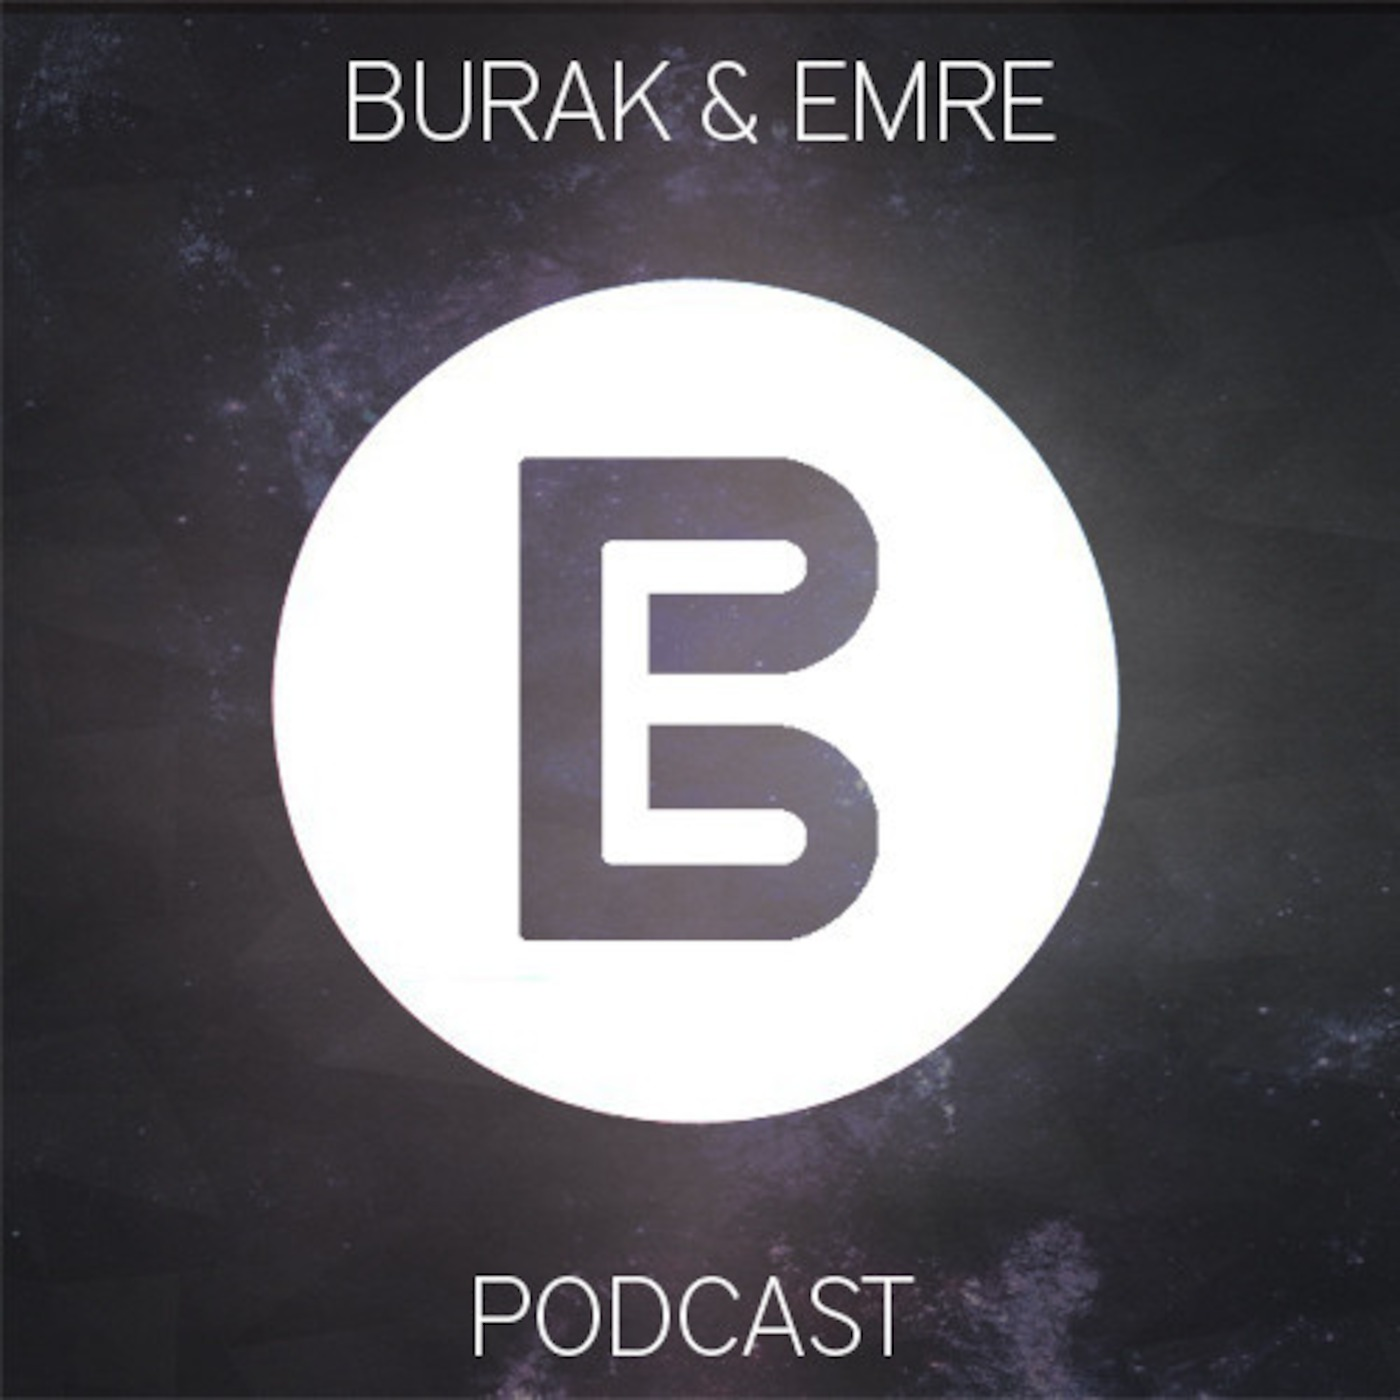 Burak & Emre Offical Podcast